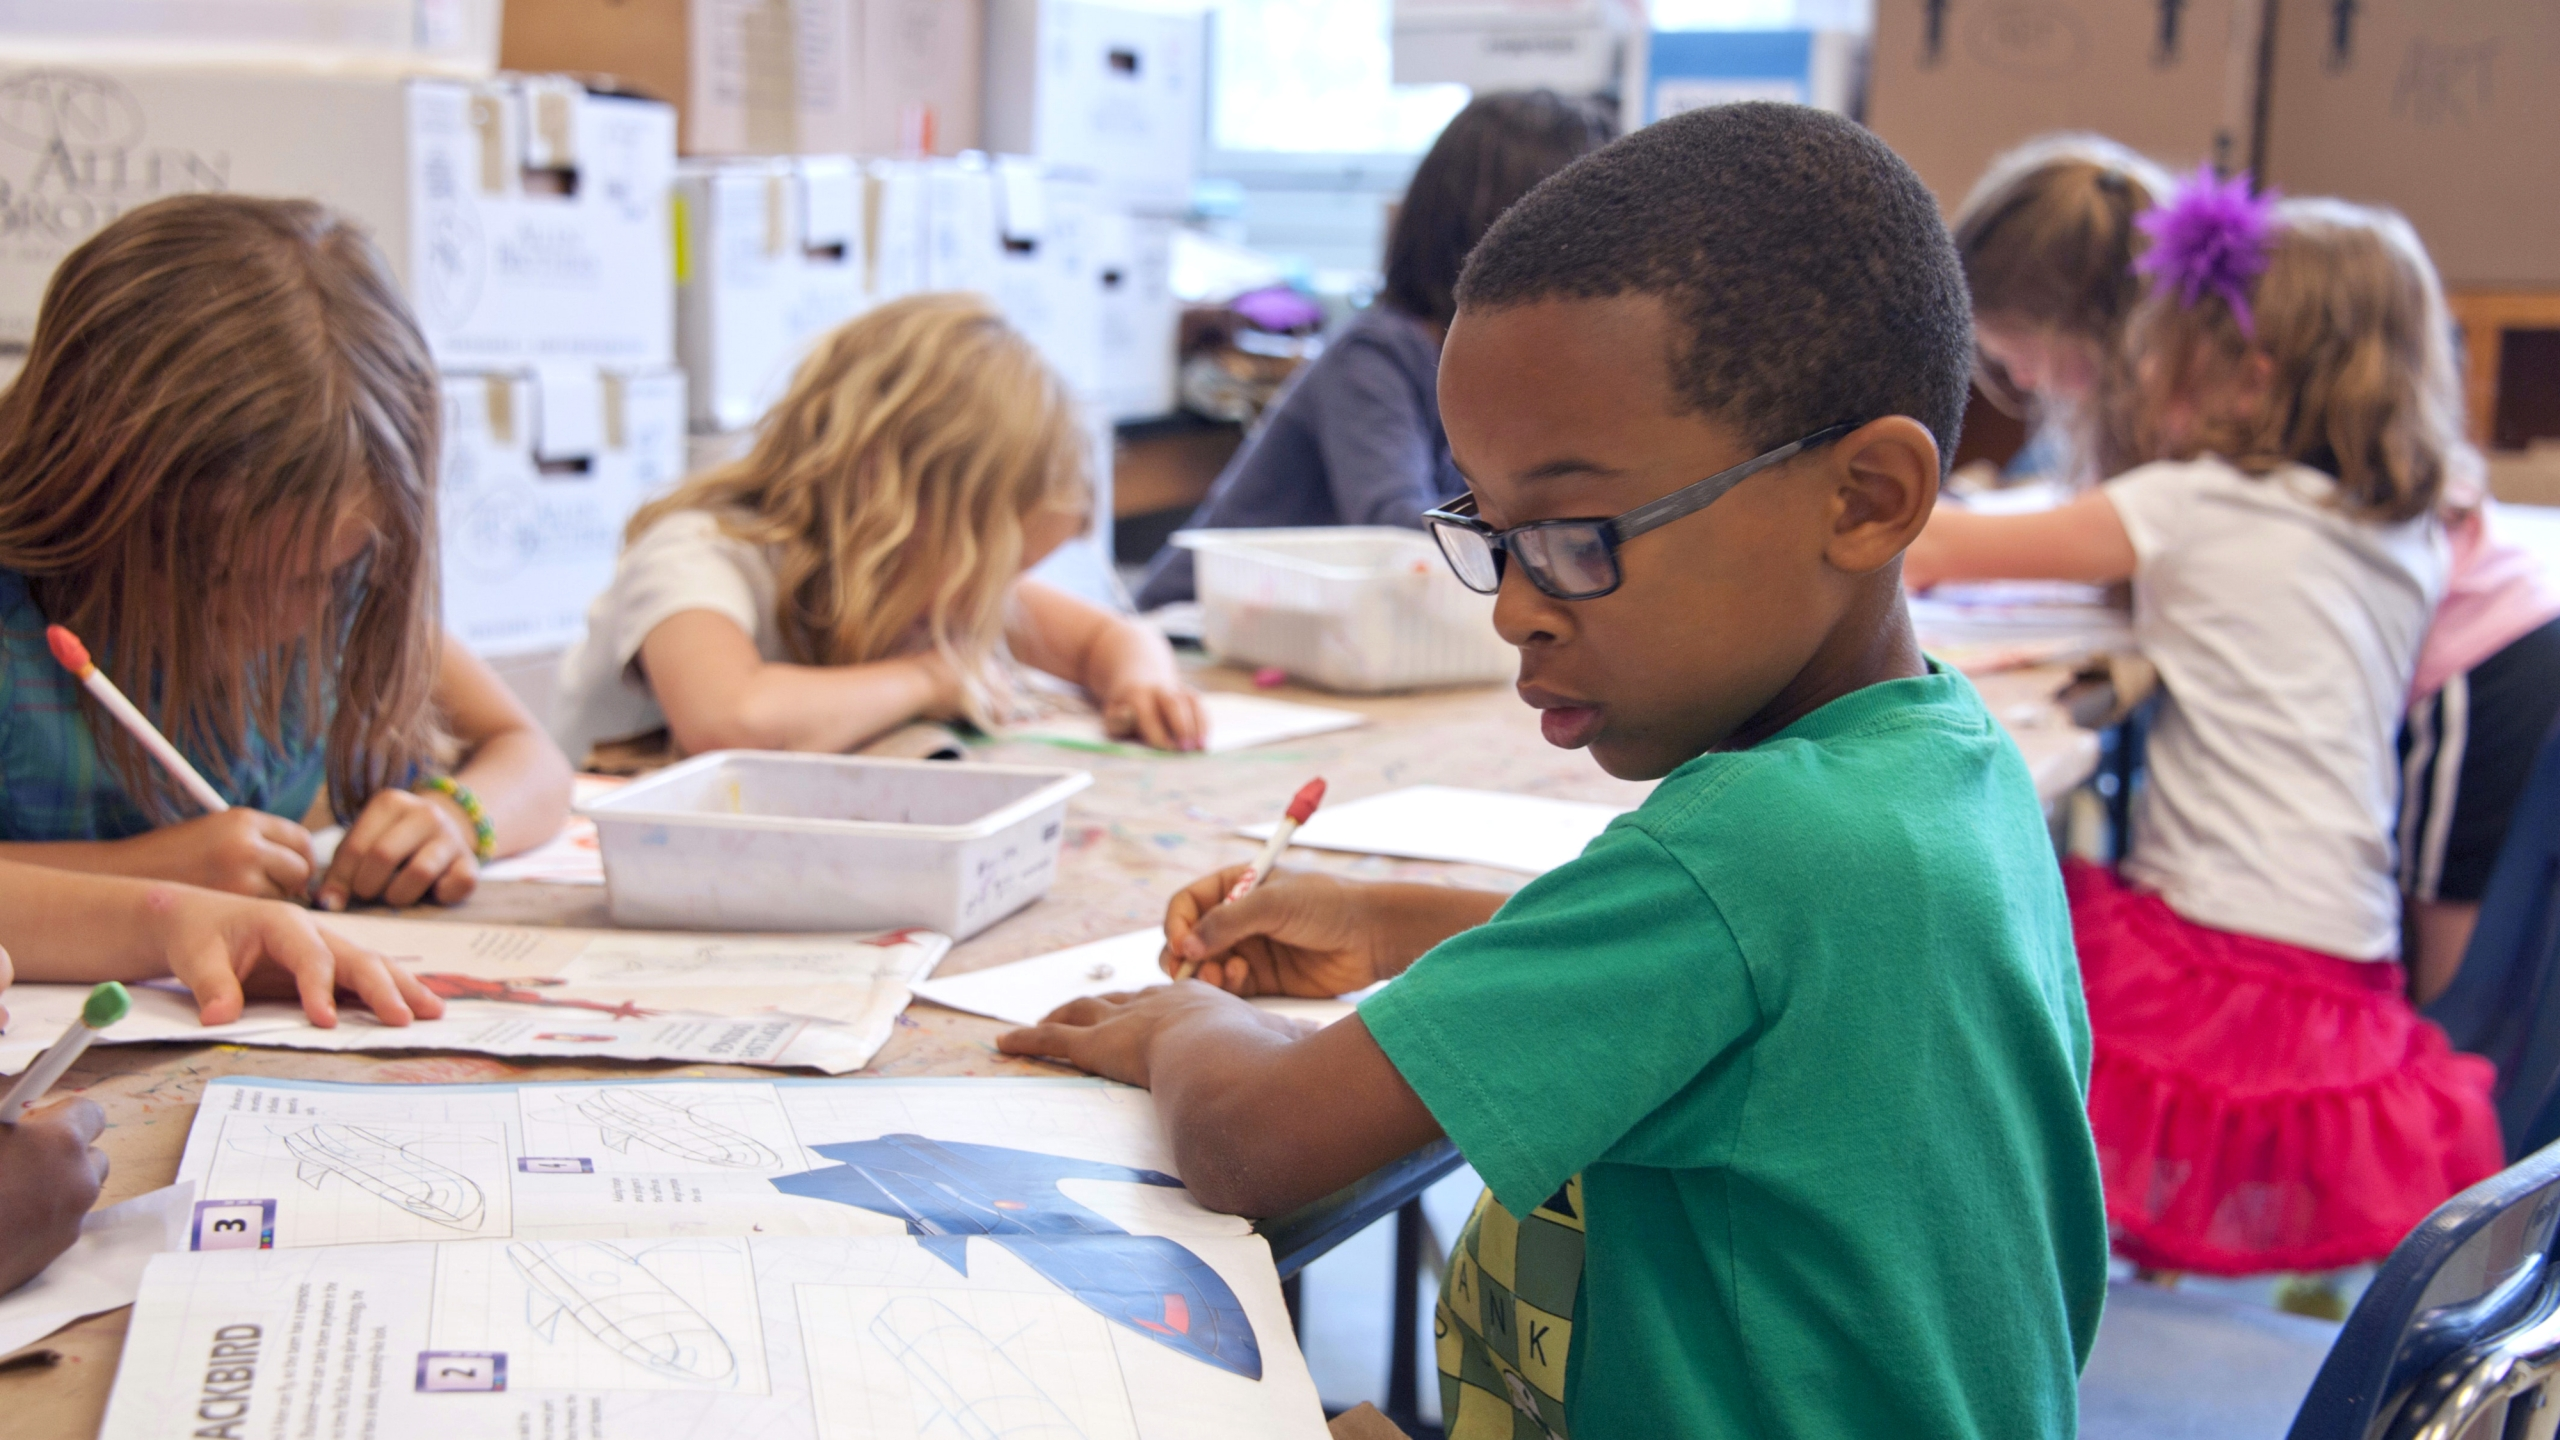 Young student completing classwork